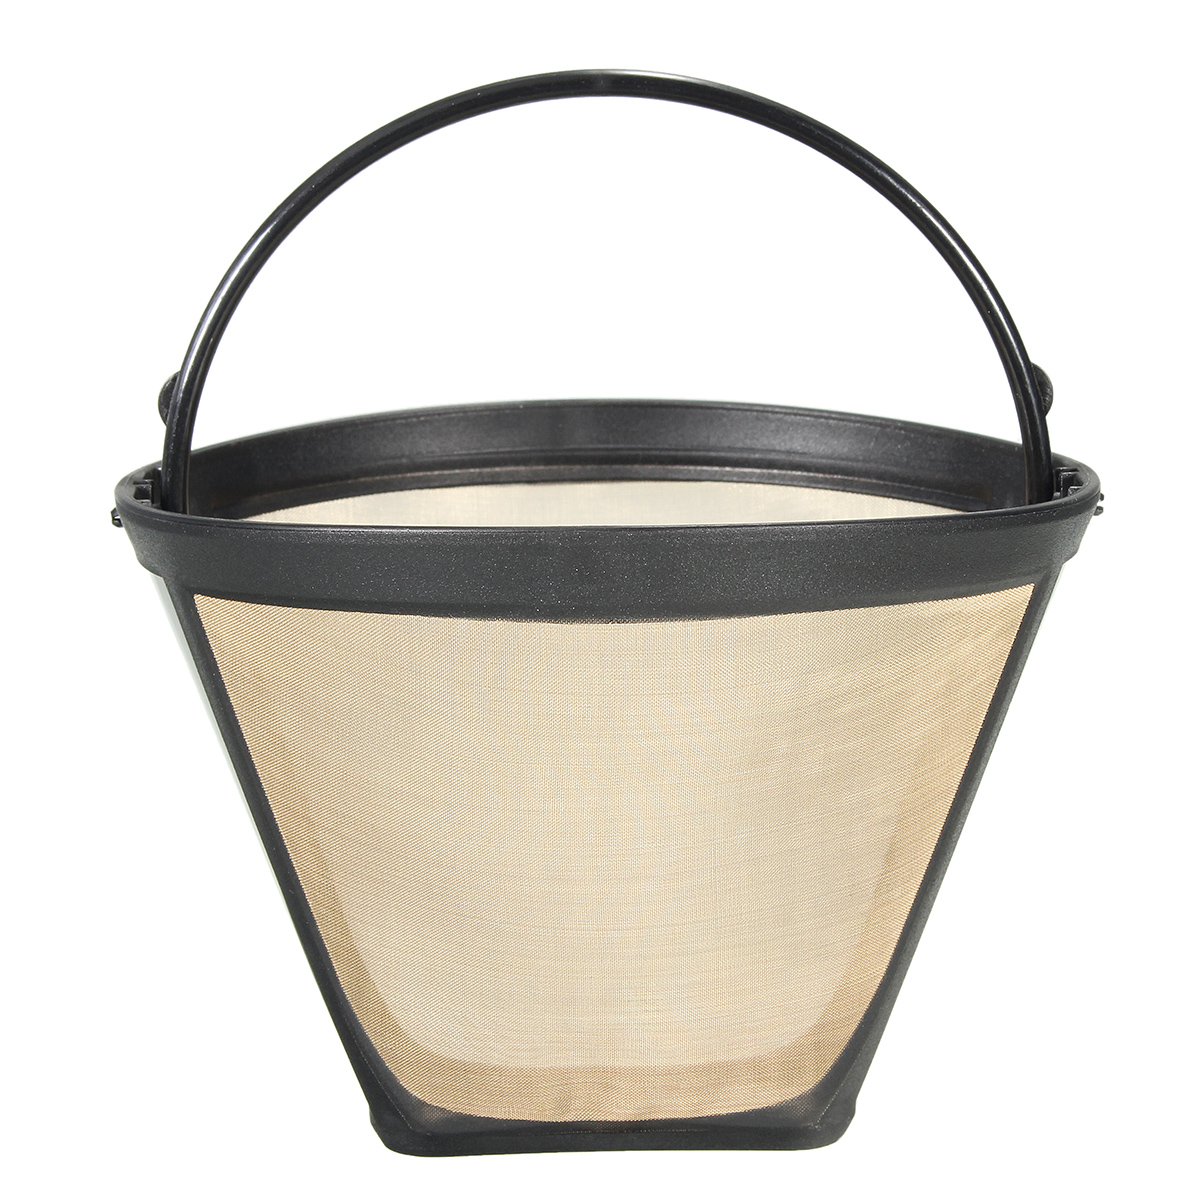 4# Cone Shape Coffee Filter Handled Stainless Mesh Basket Maker Reusable Permanent New by